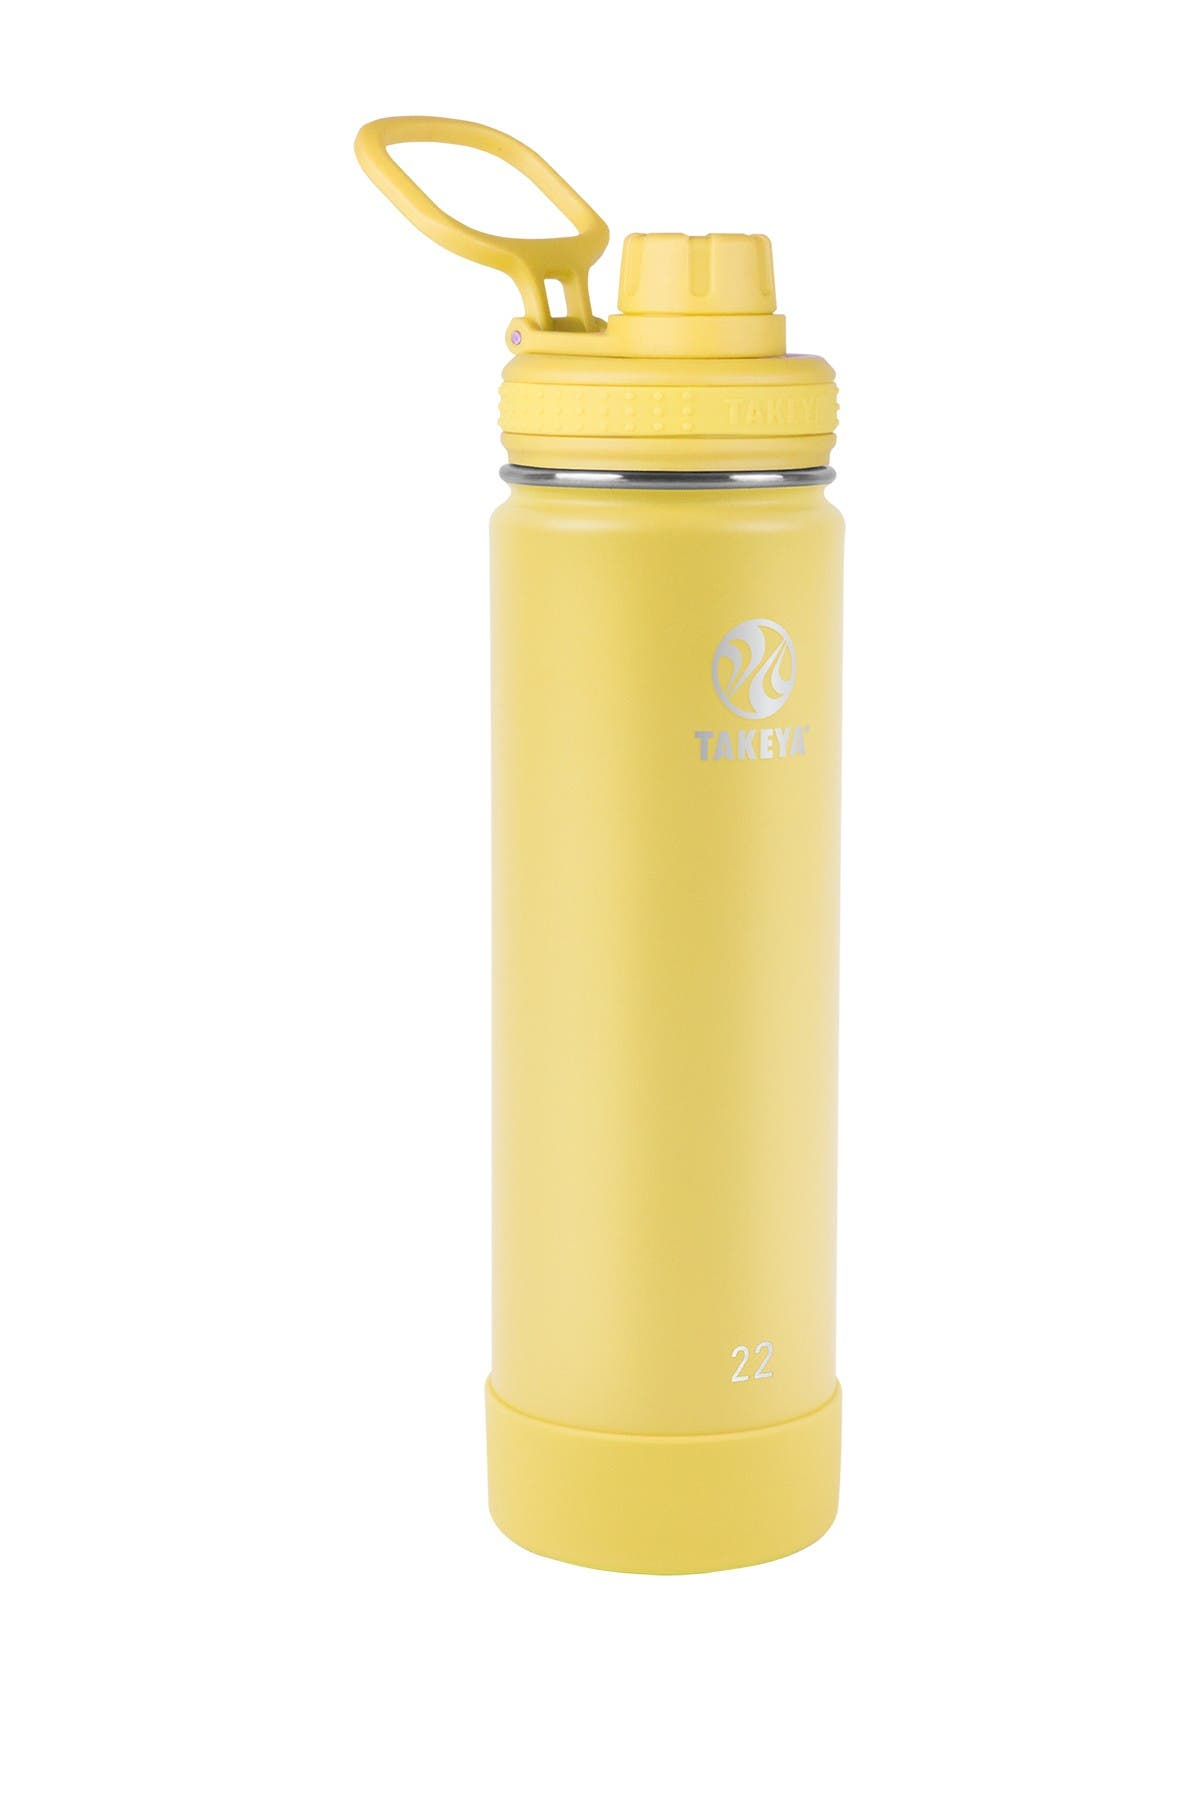 Image of Takeya Canary Actives Insulated 22 oz. Spout Lid Stainless Steel Bottle